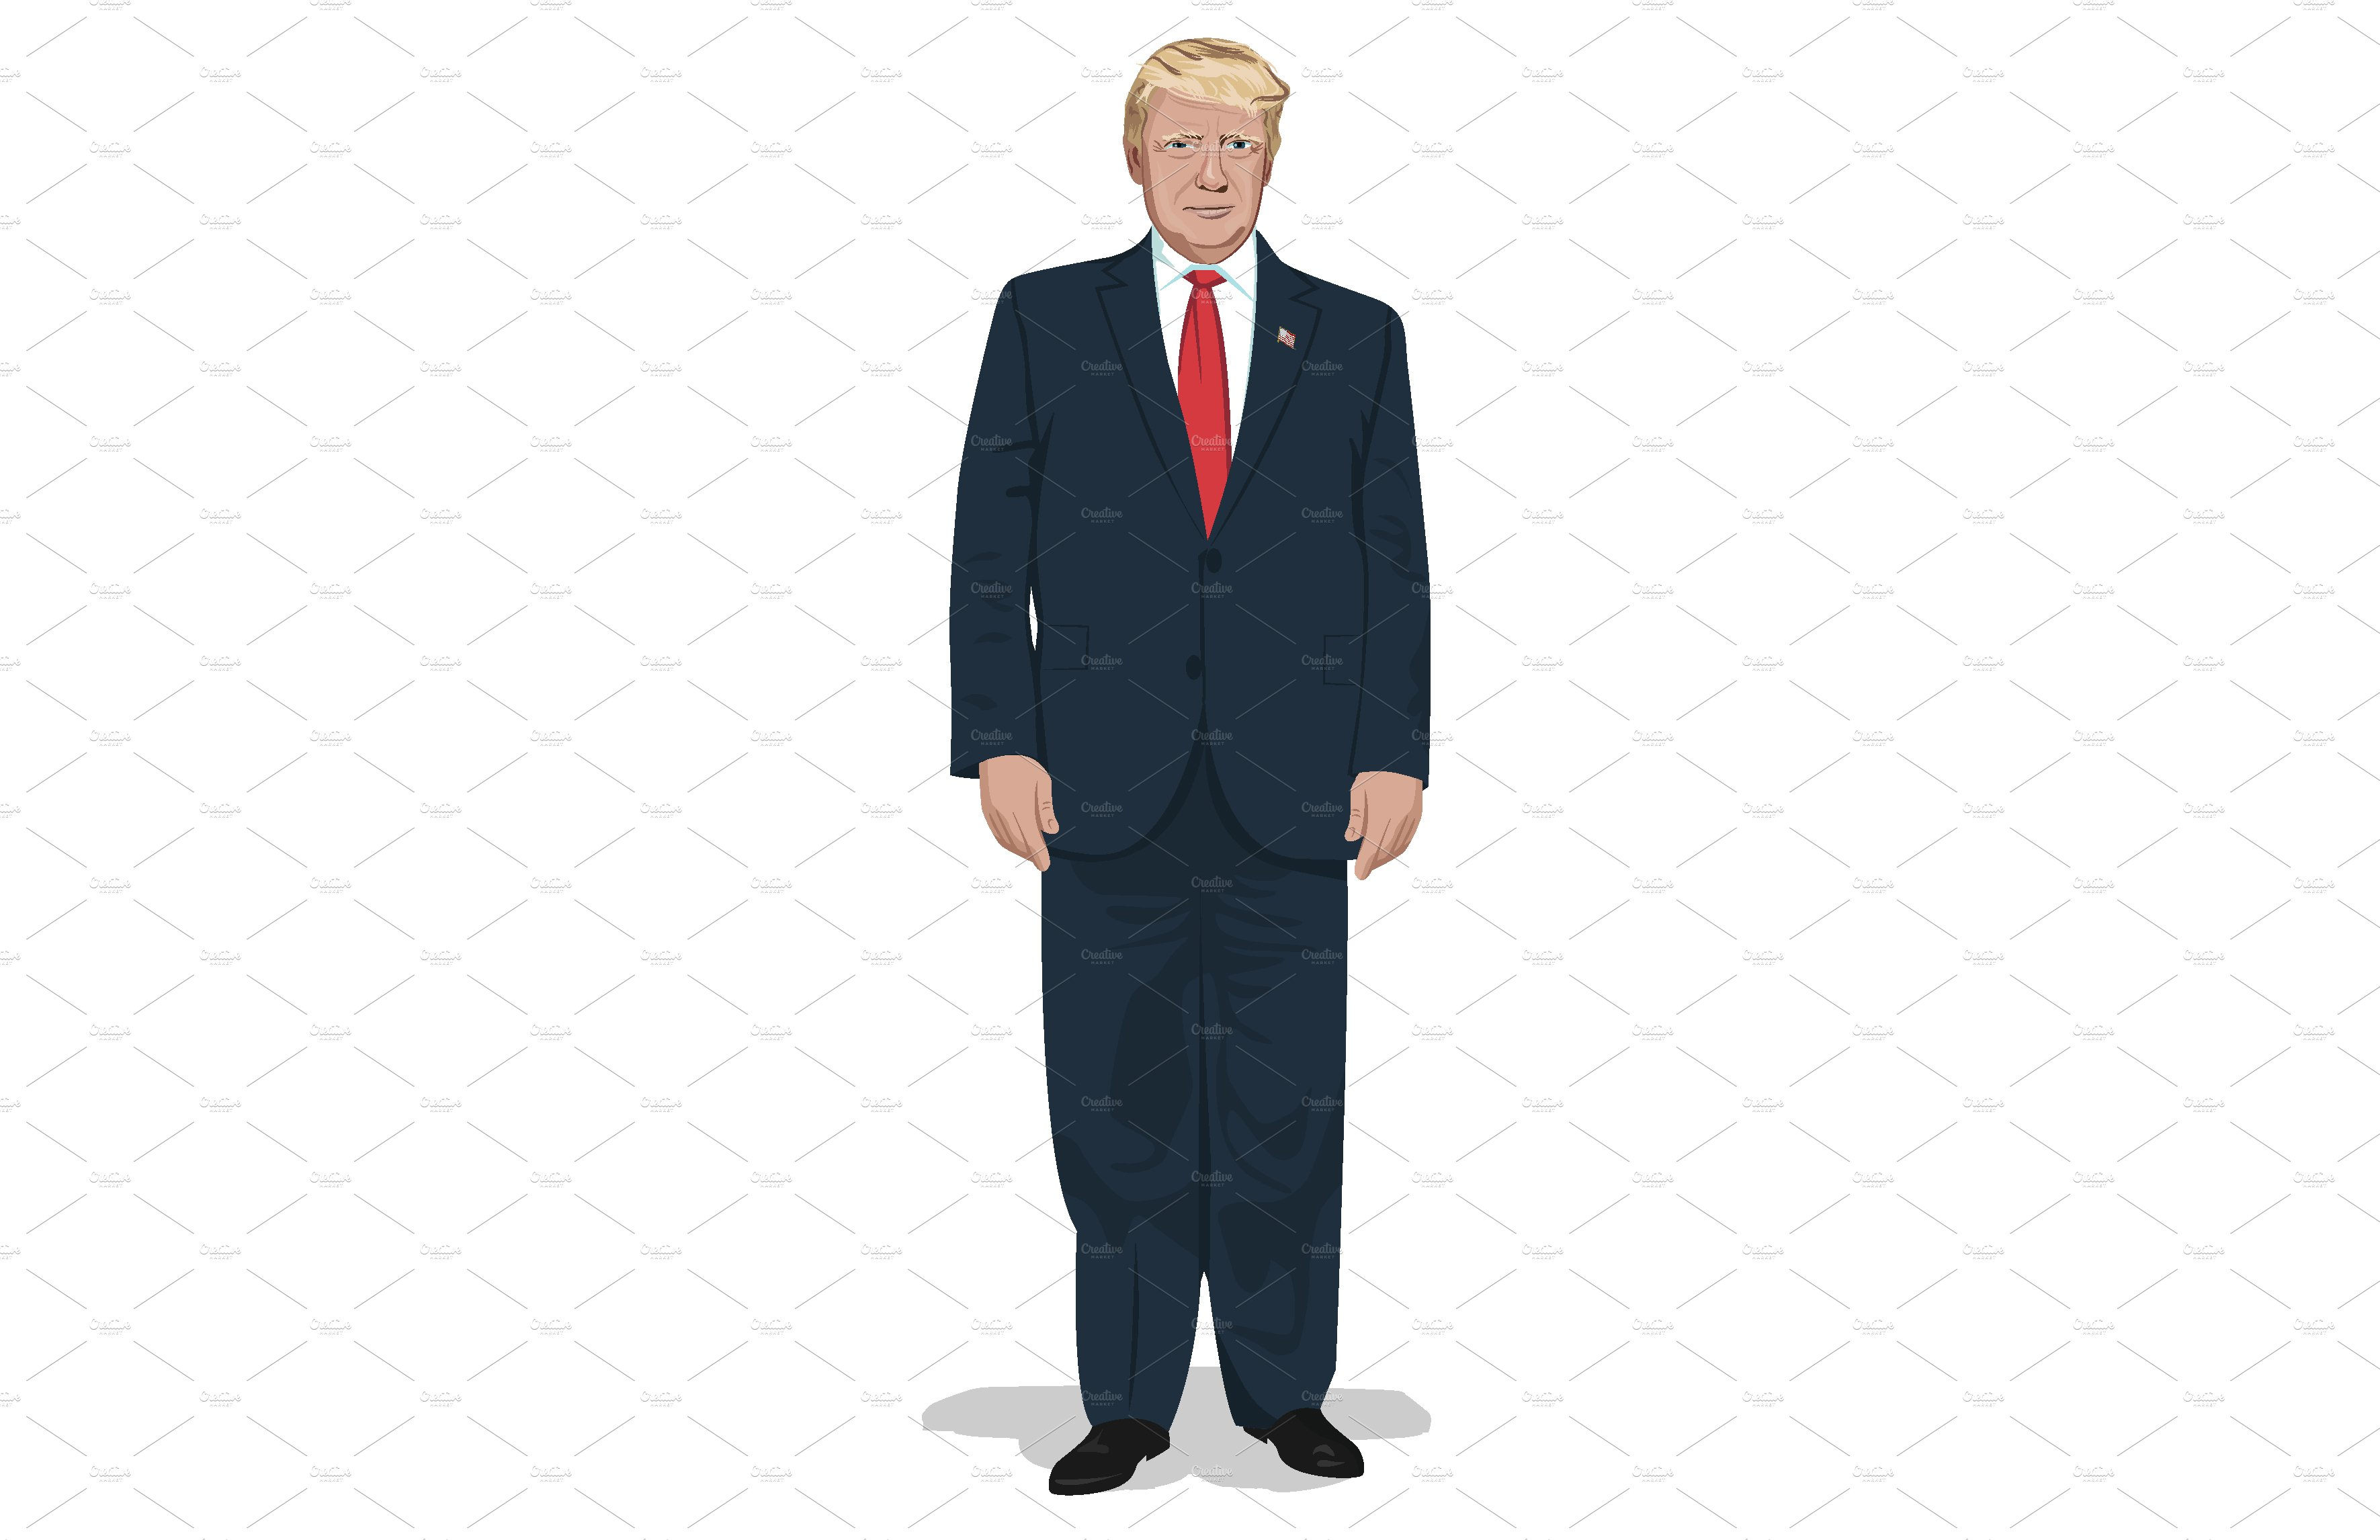 President Donald Trump full body.